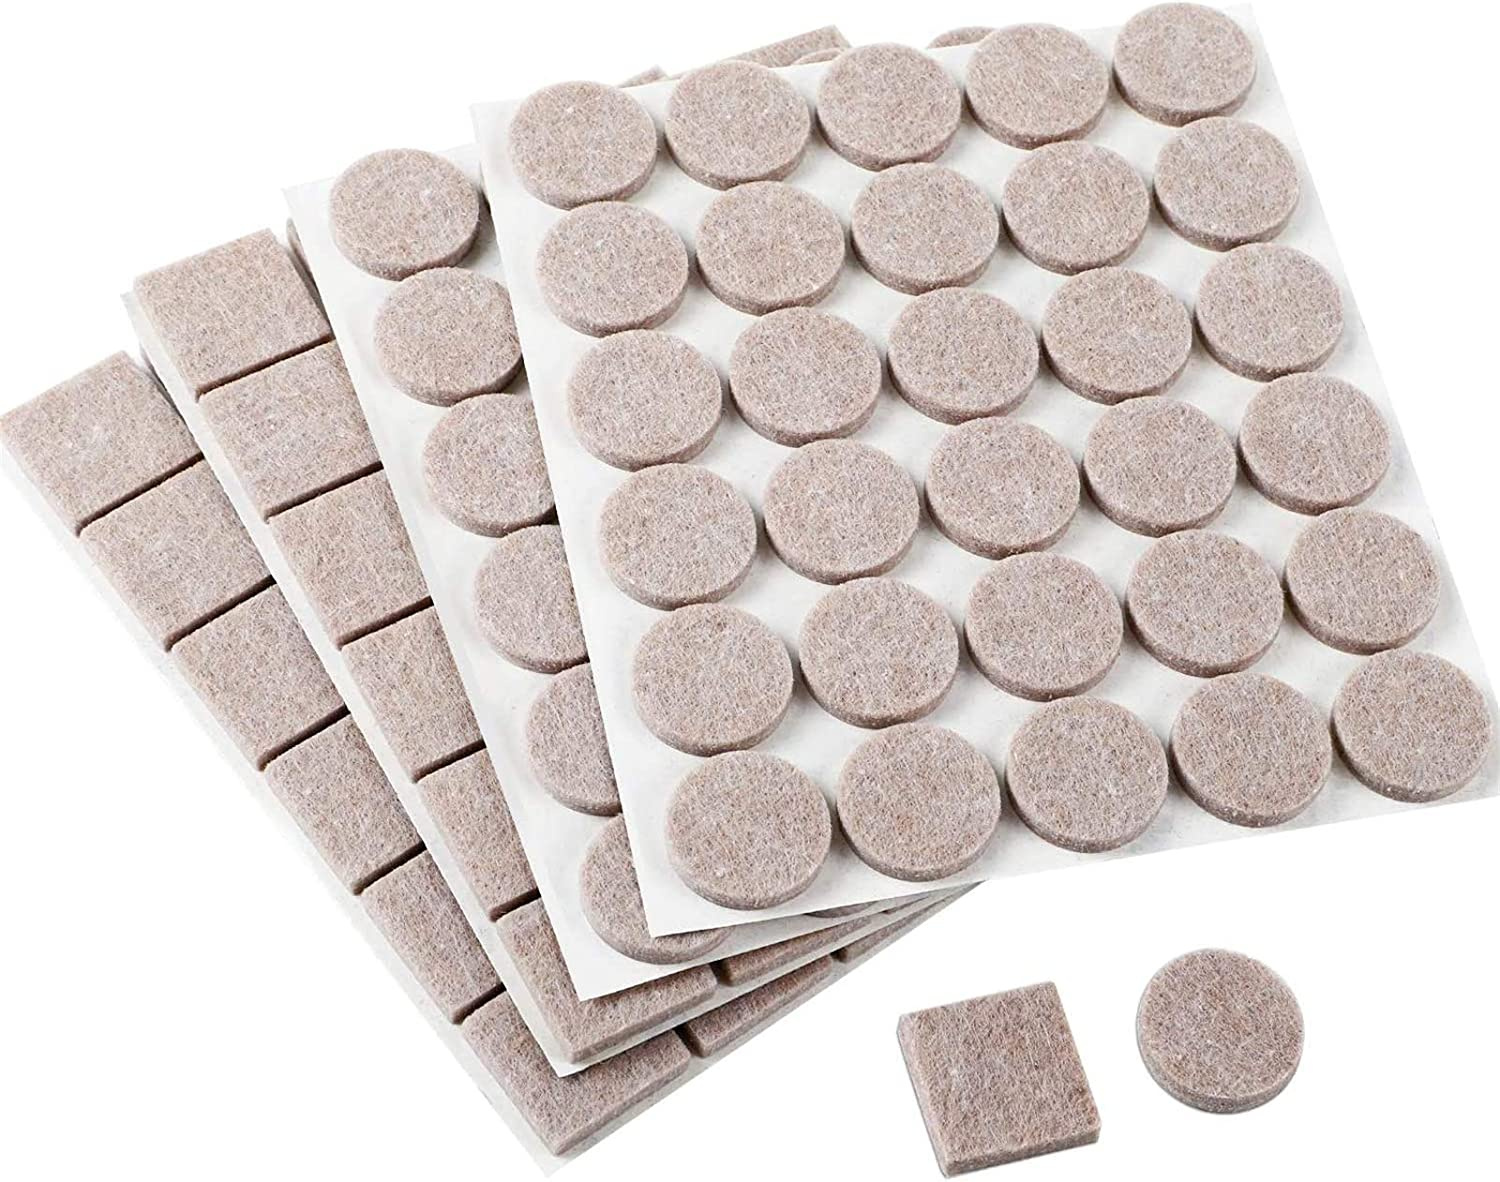 HongWay Heavy Duty 1 Inch Furniture Felt Pads Wood Floor Protectors 5mm Thick 120pcs, Including 60pcs Beige Round and 60pcs Beige Square